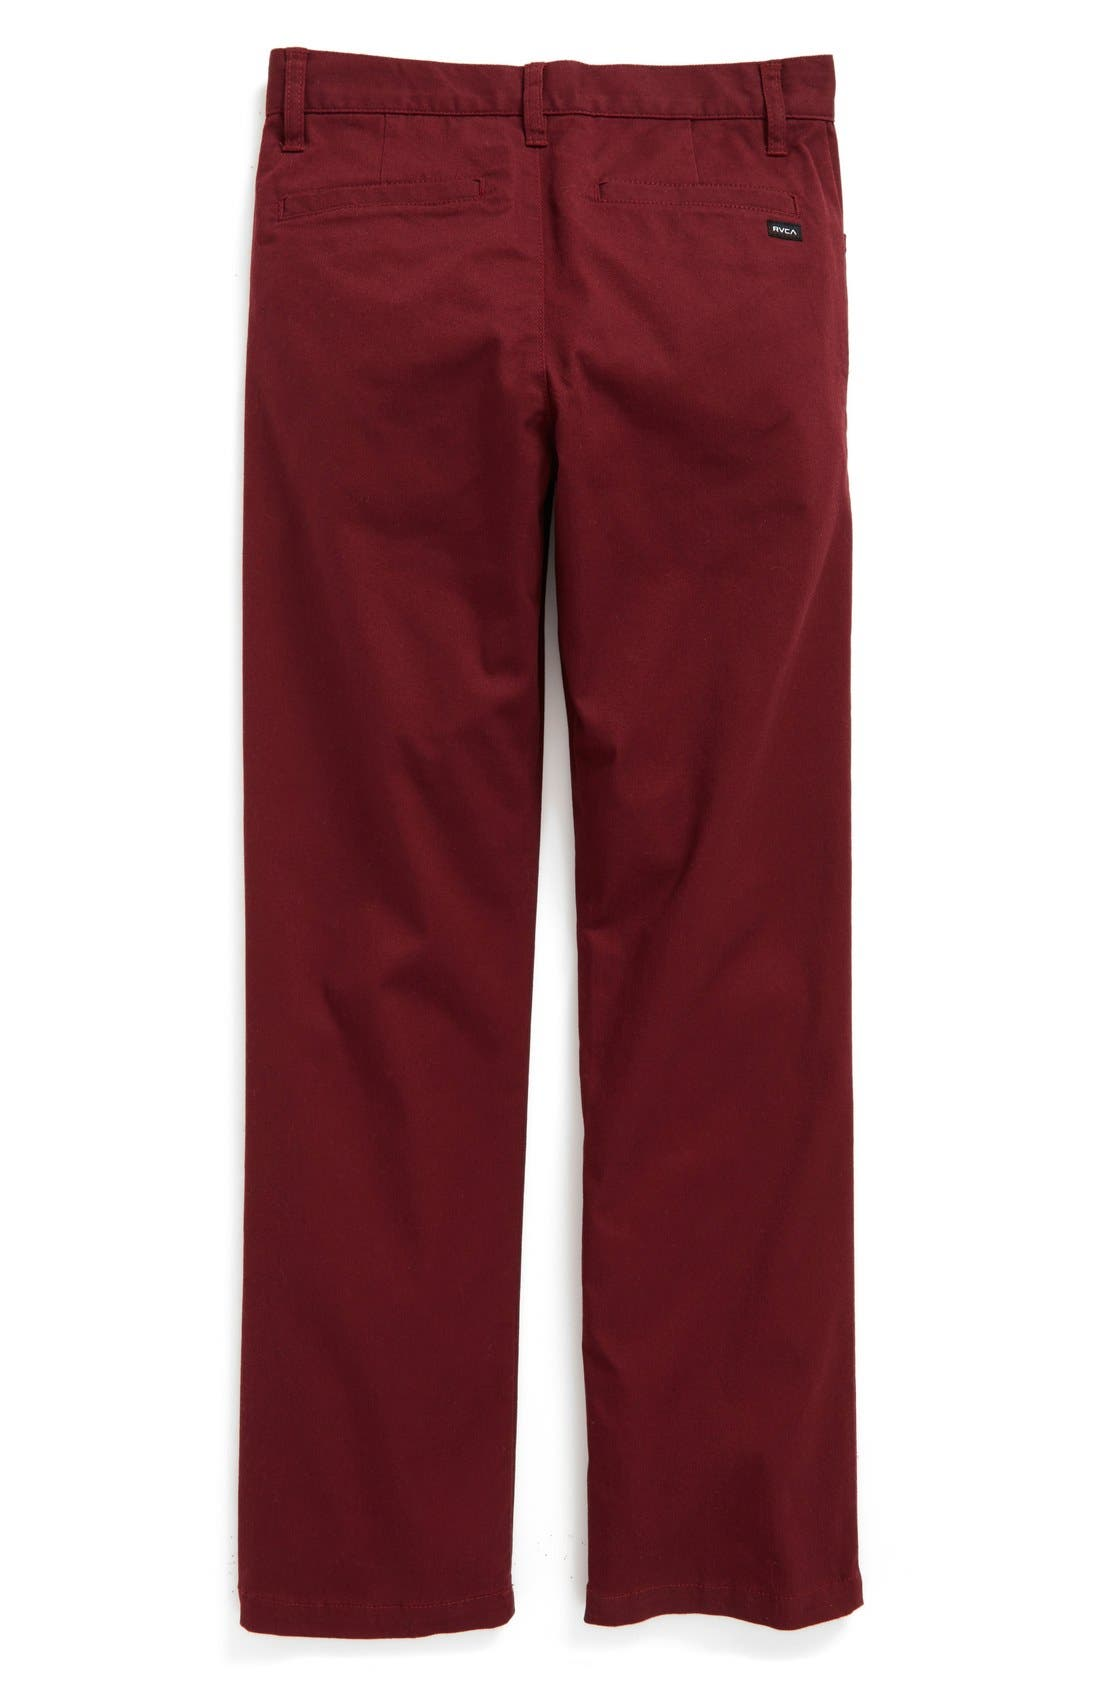 'Weekday' Stretch Chinos,                             Alternate thumbnail 15, color,